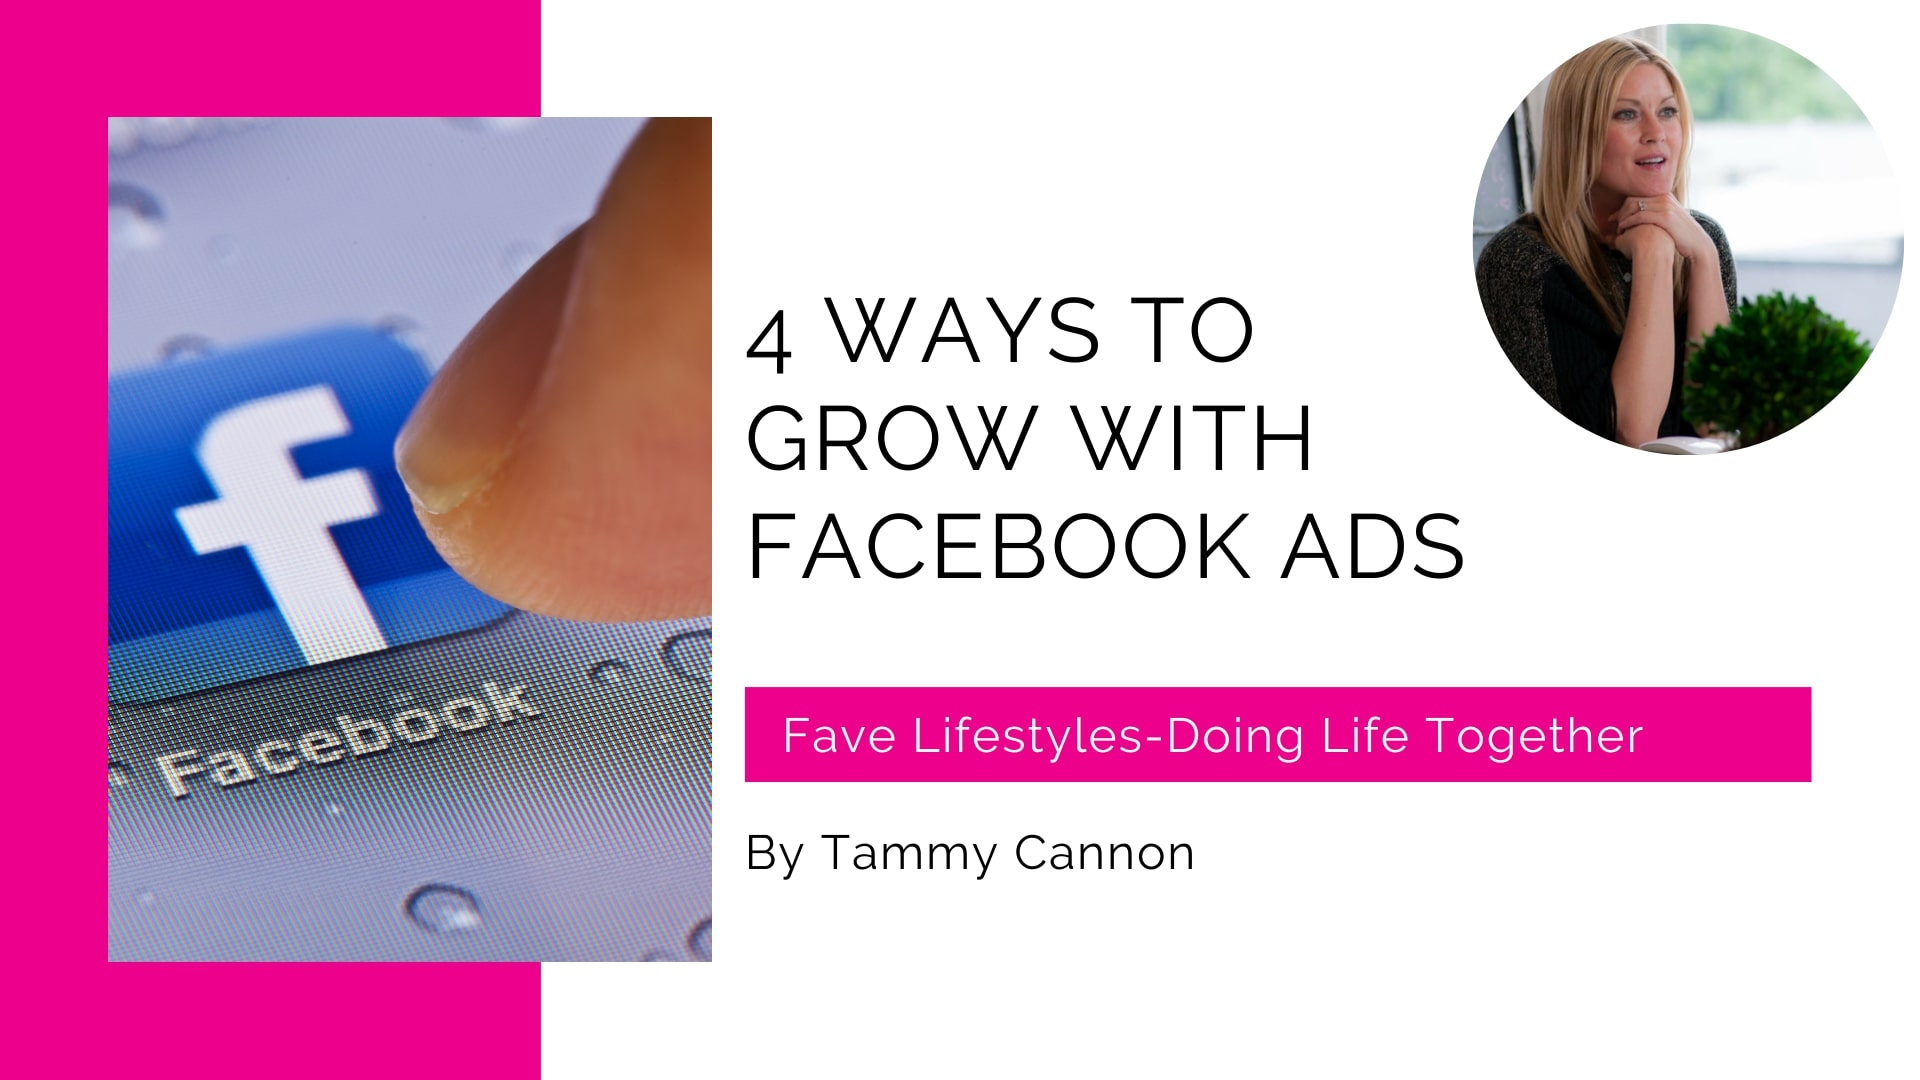 4 Ways to Grow with Facebook Ads